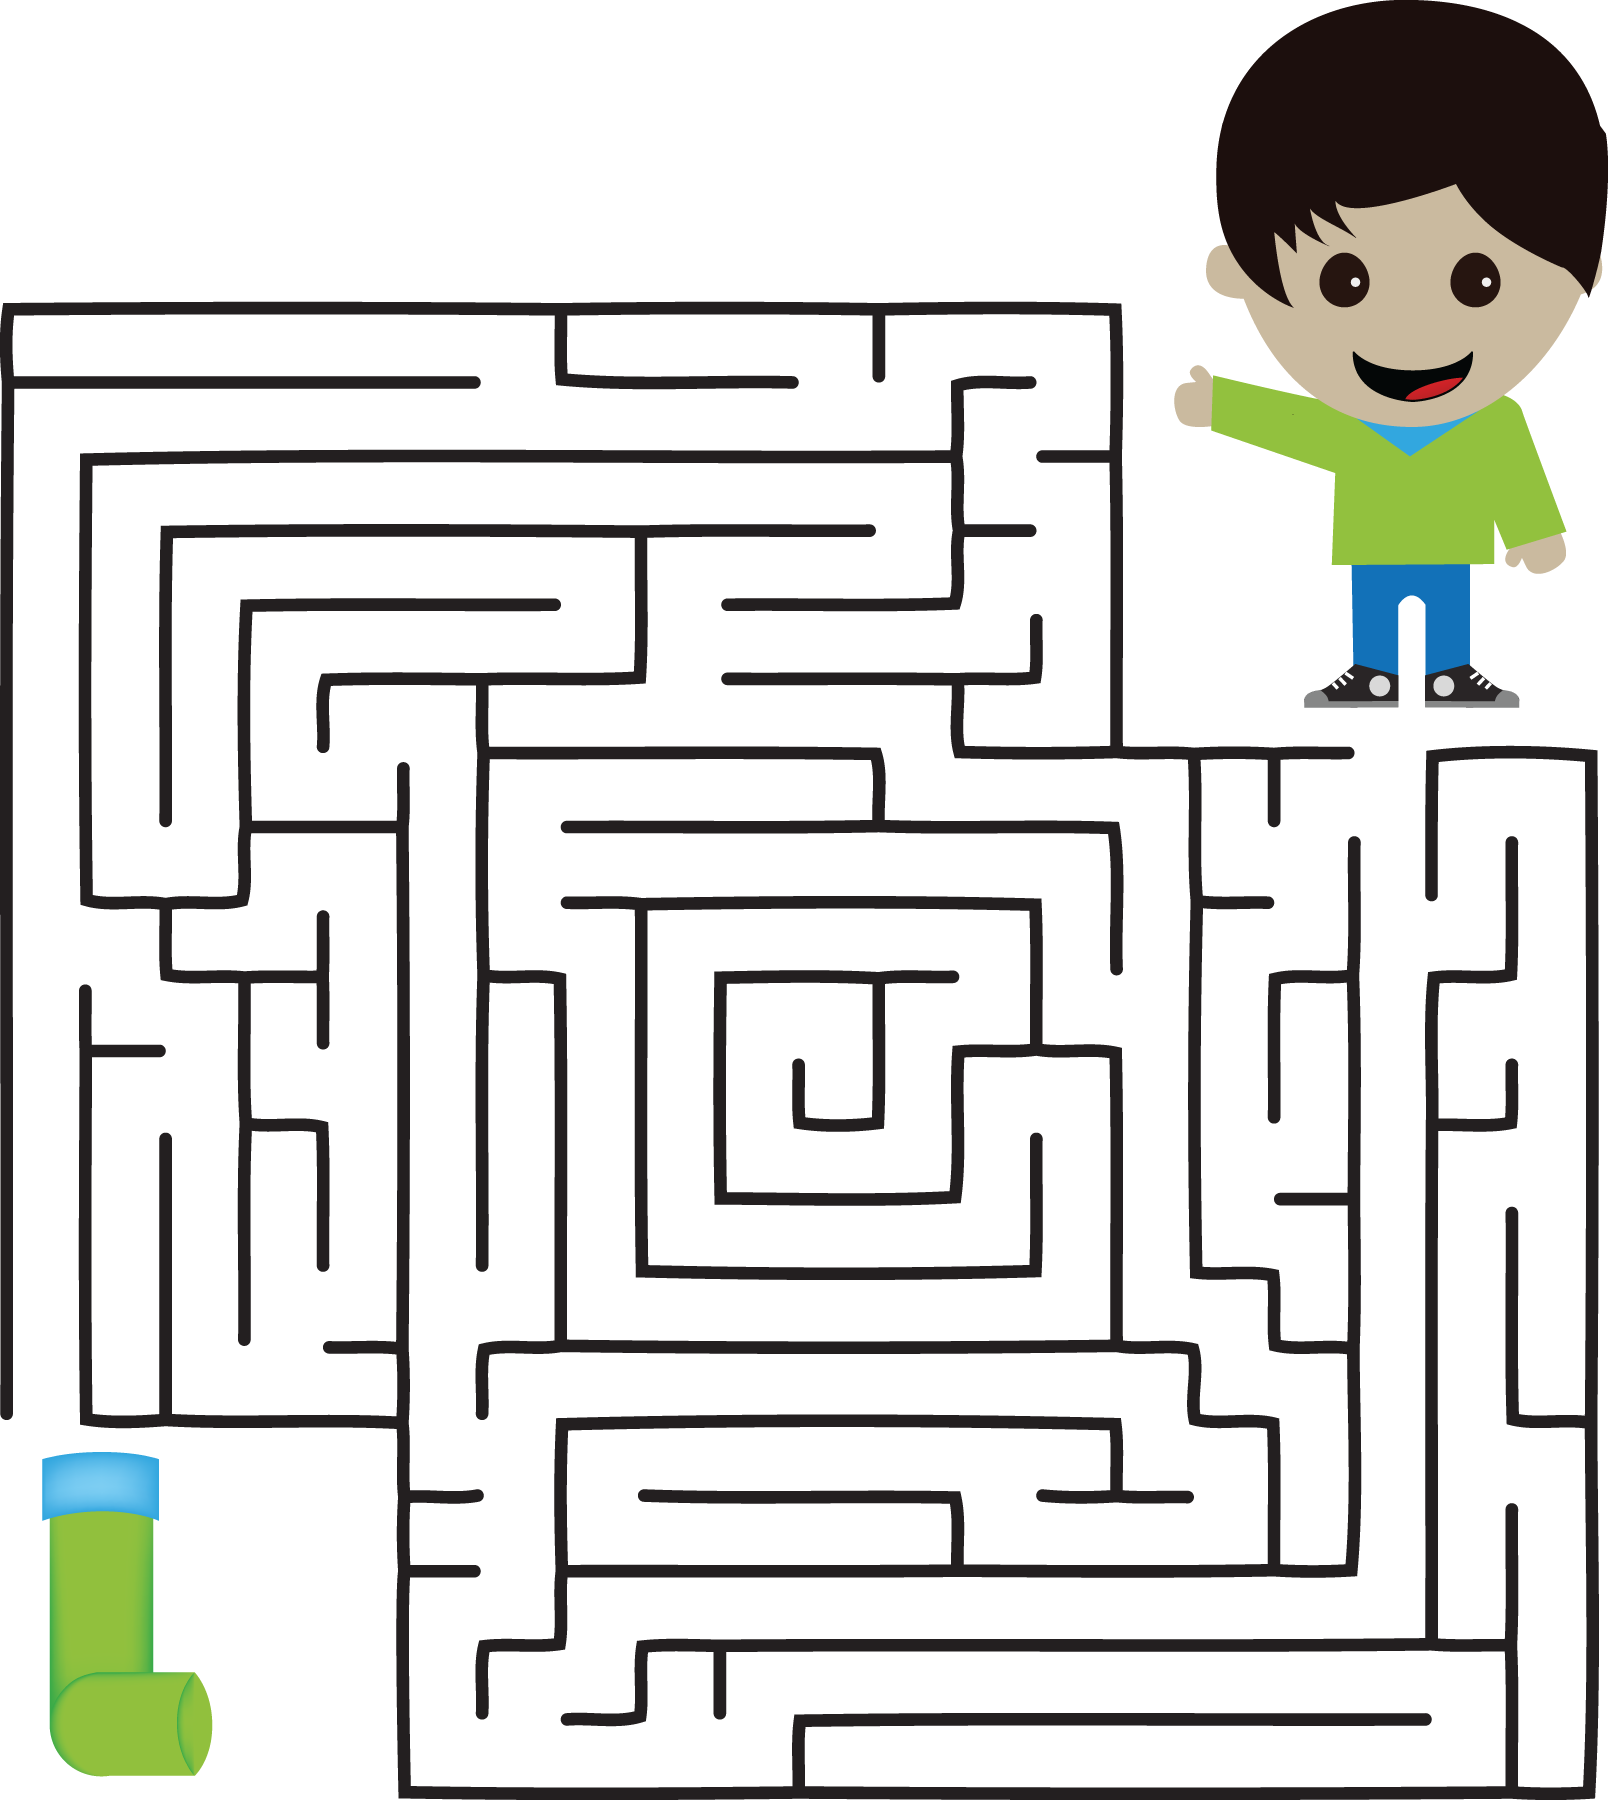 maze-for-kids-printable